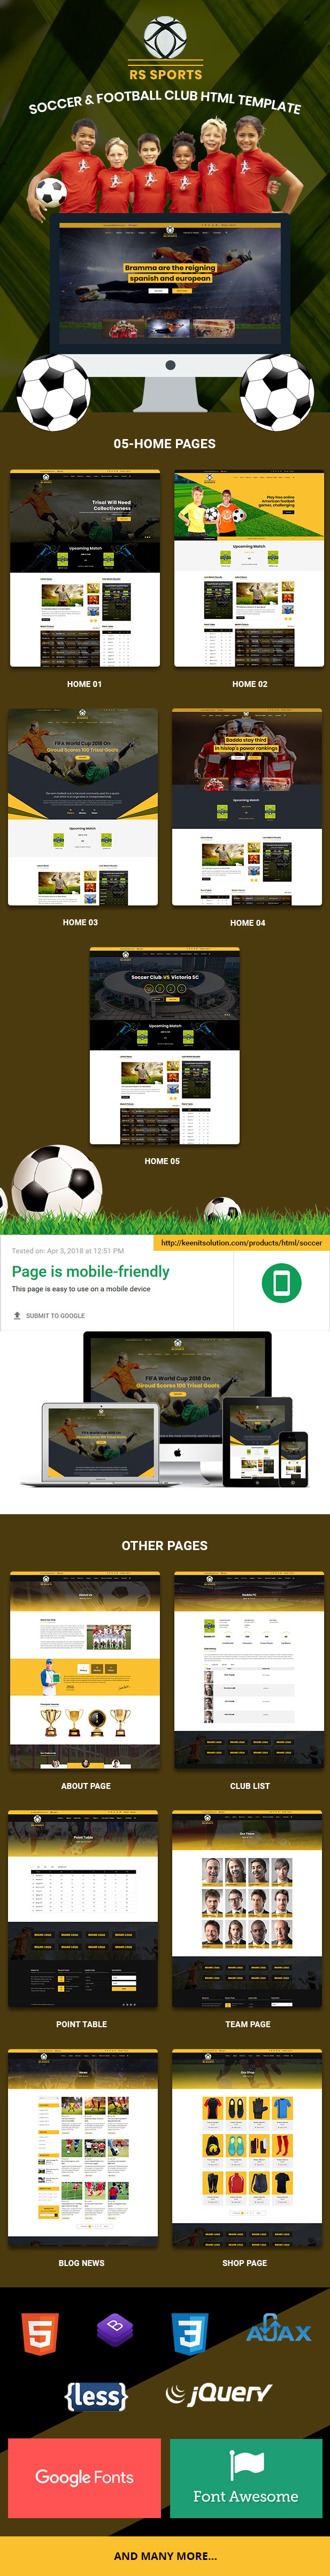 RS Sports – Soccer & Football Club HTML Template | MasterTemplate